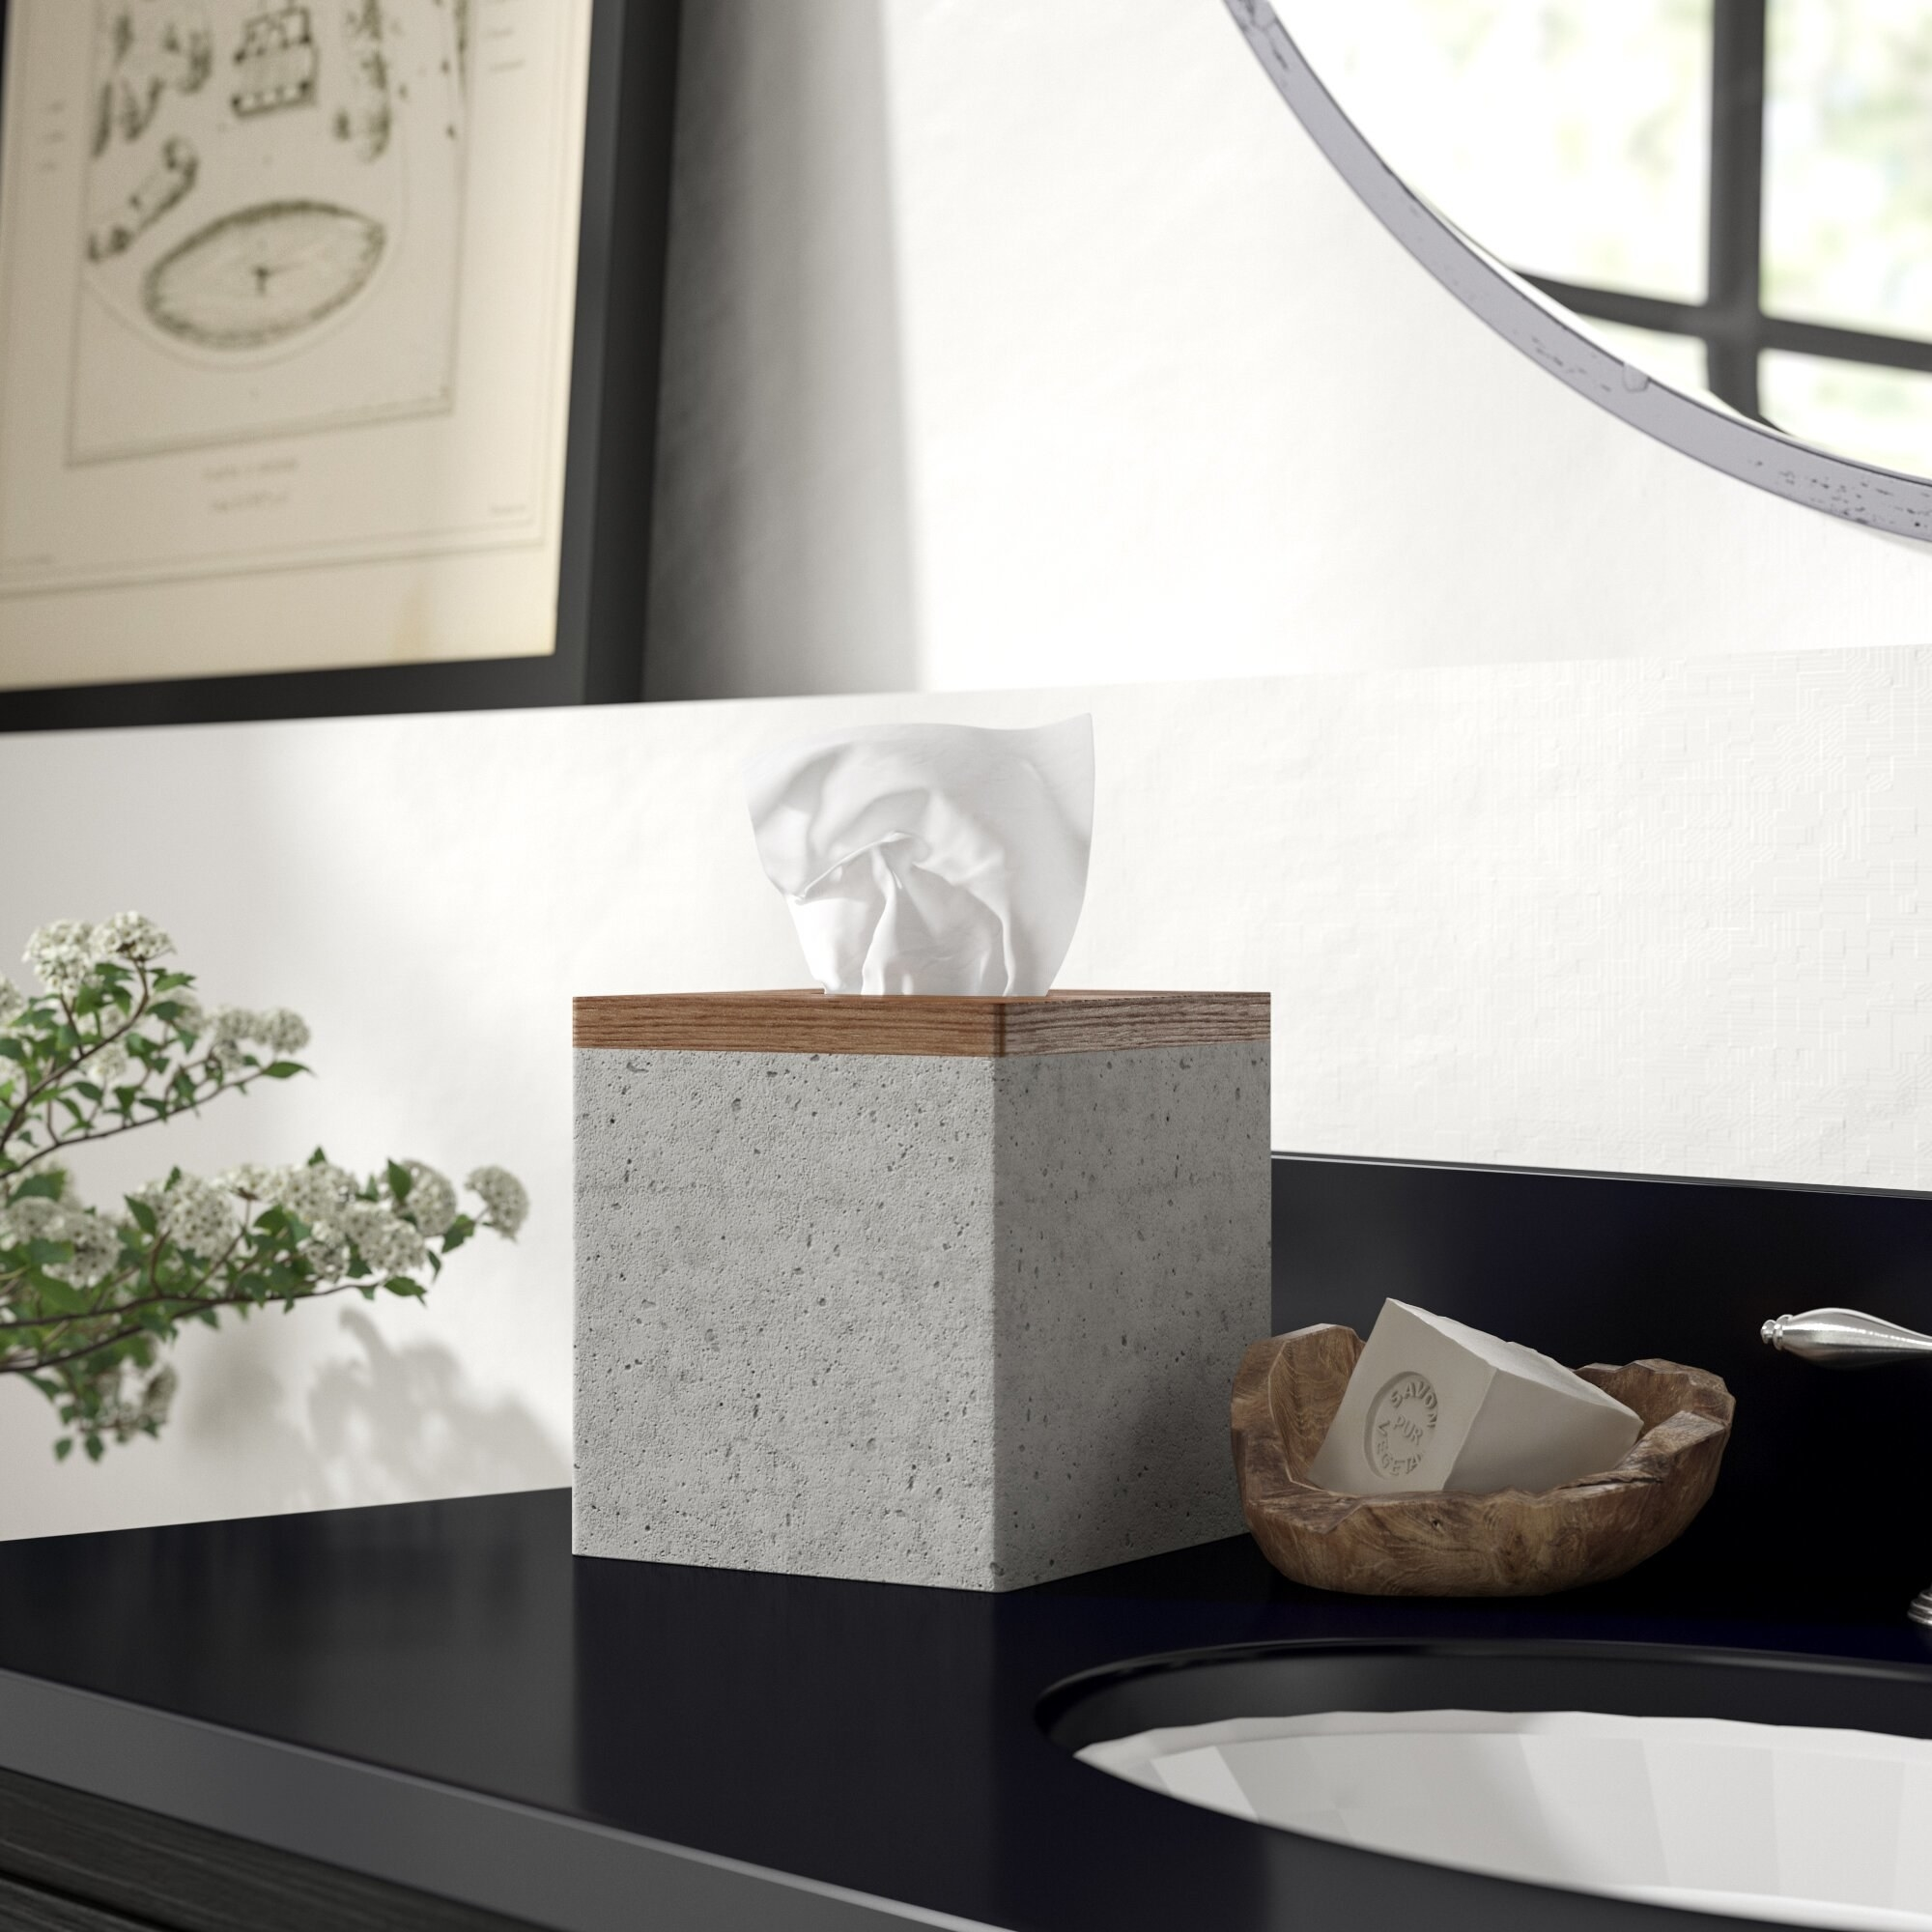 the tissue box cover on the counter